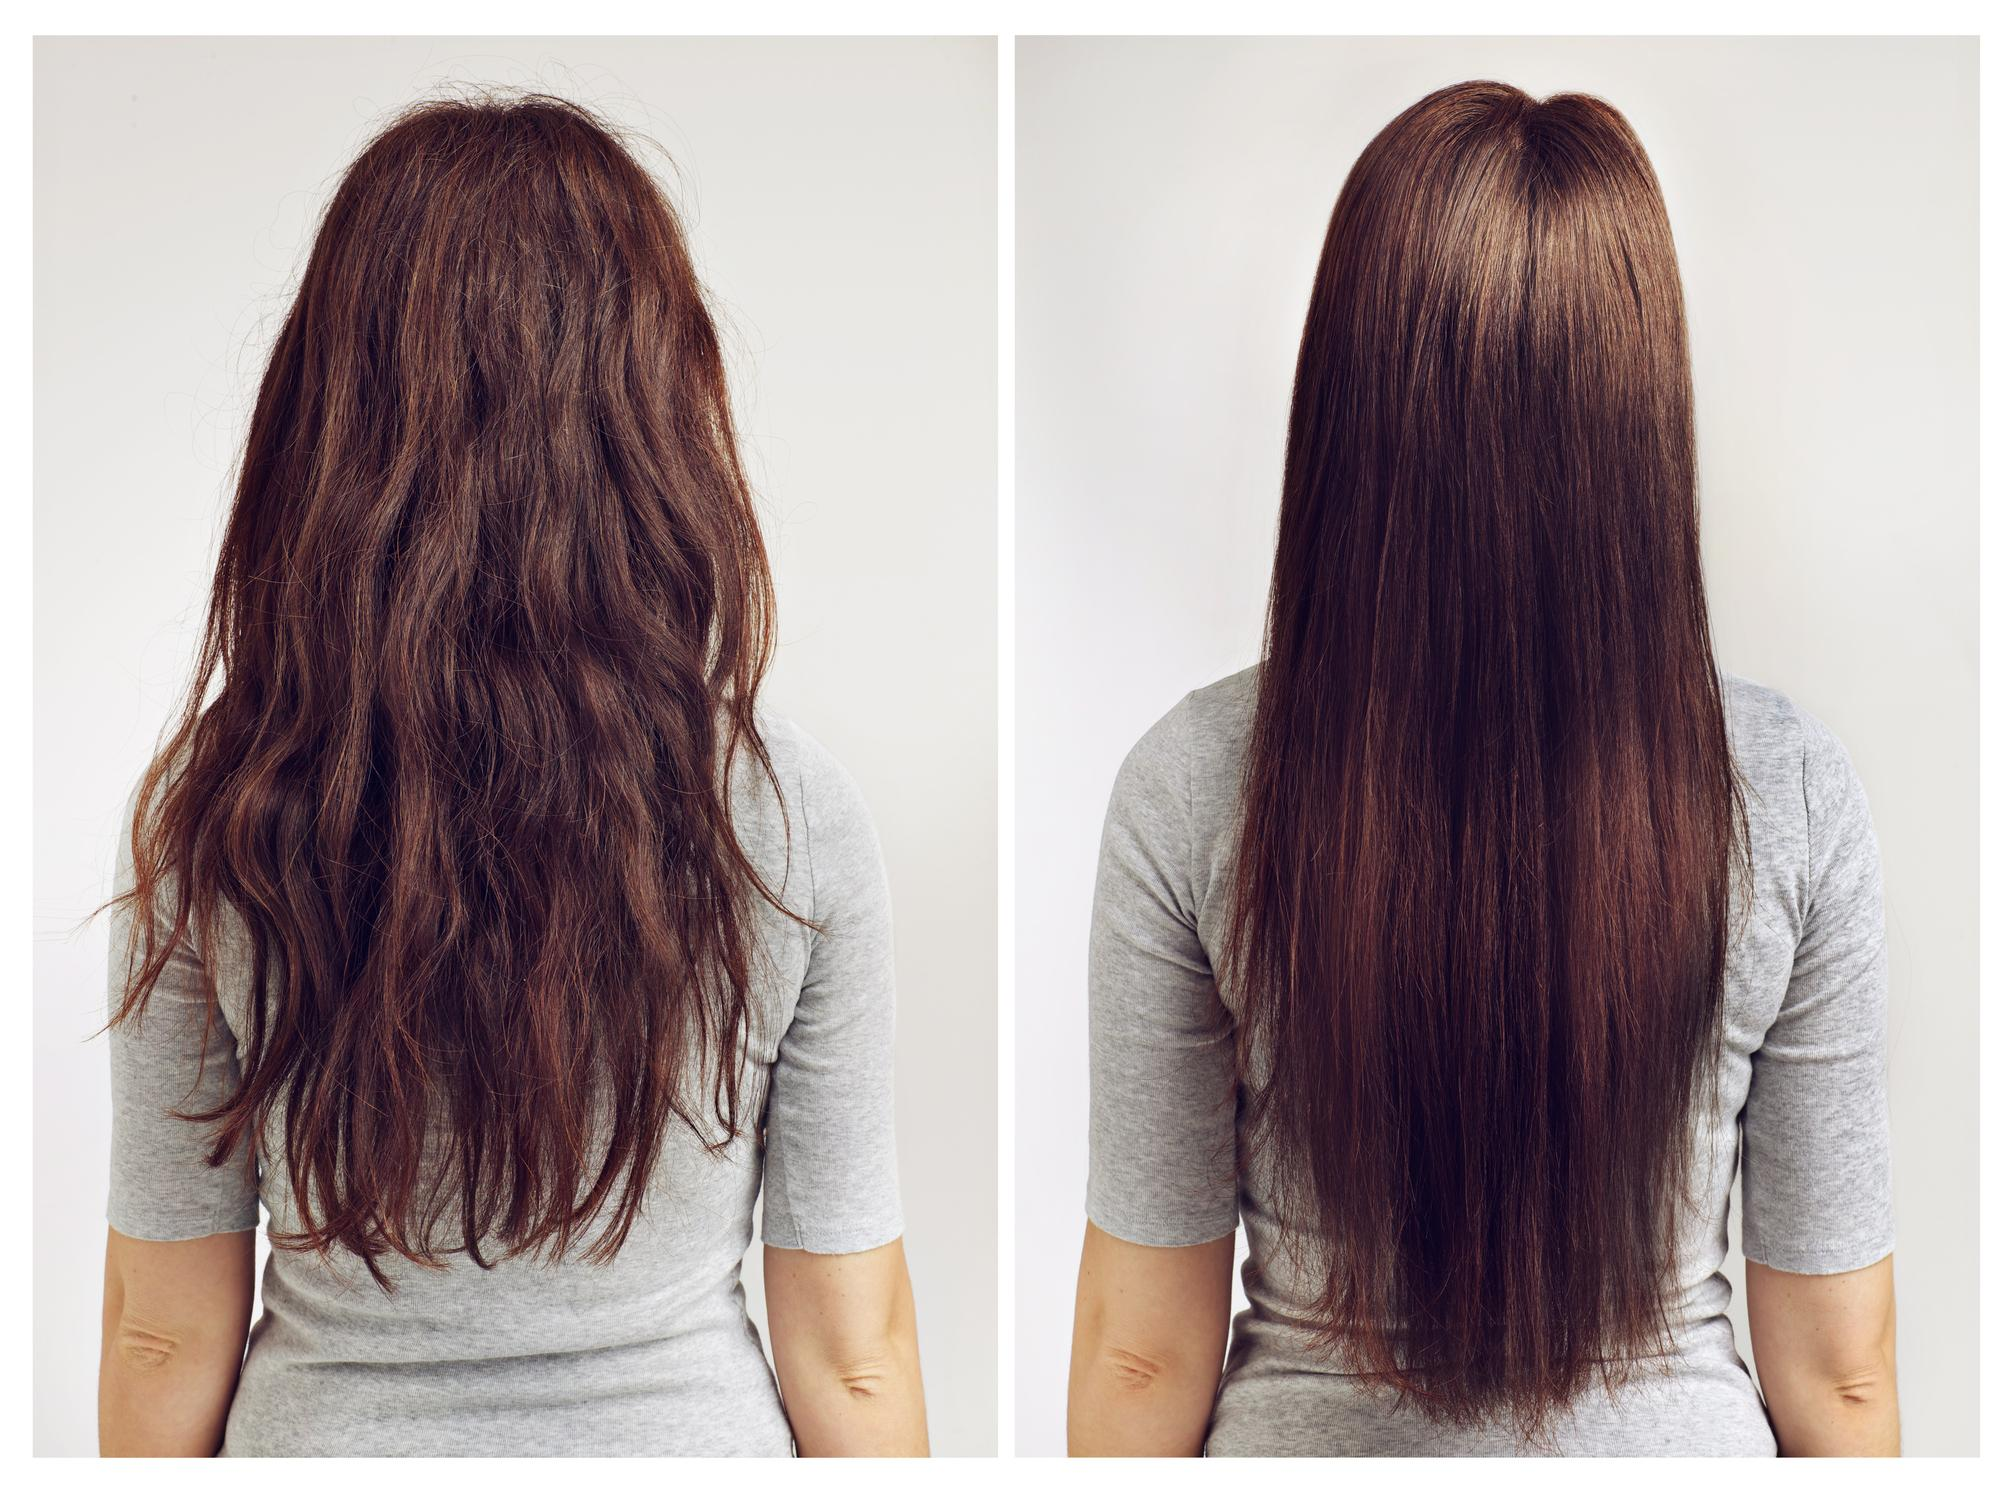 17 facts about chemically straightening your hair - Salon straightening treatments ...